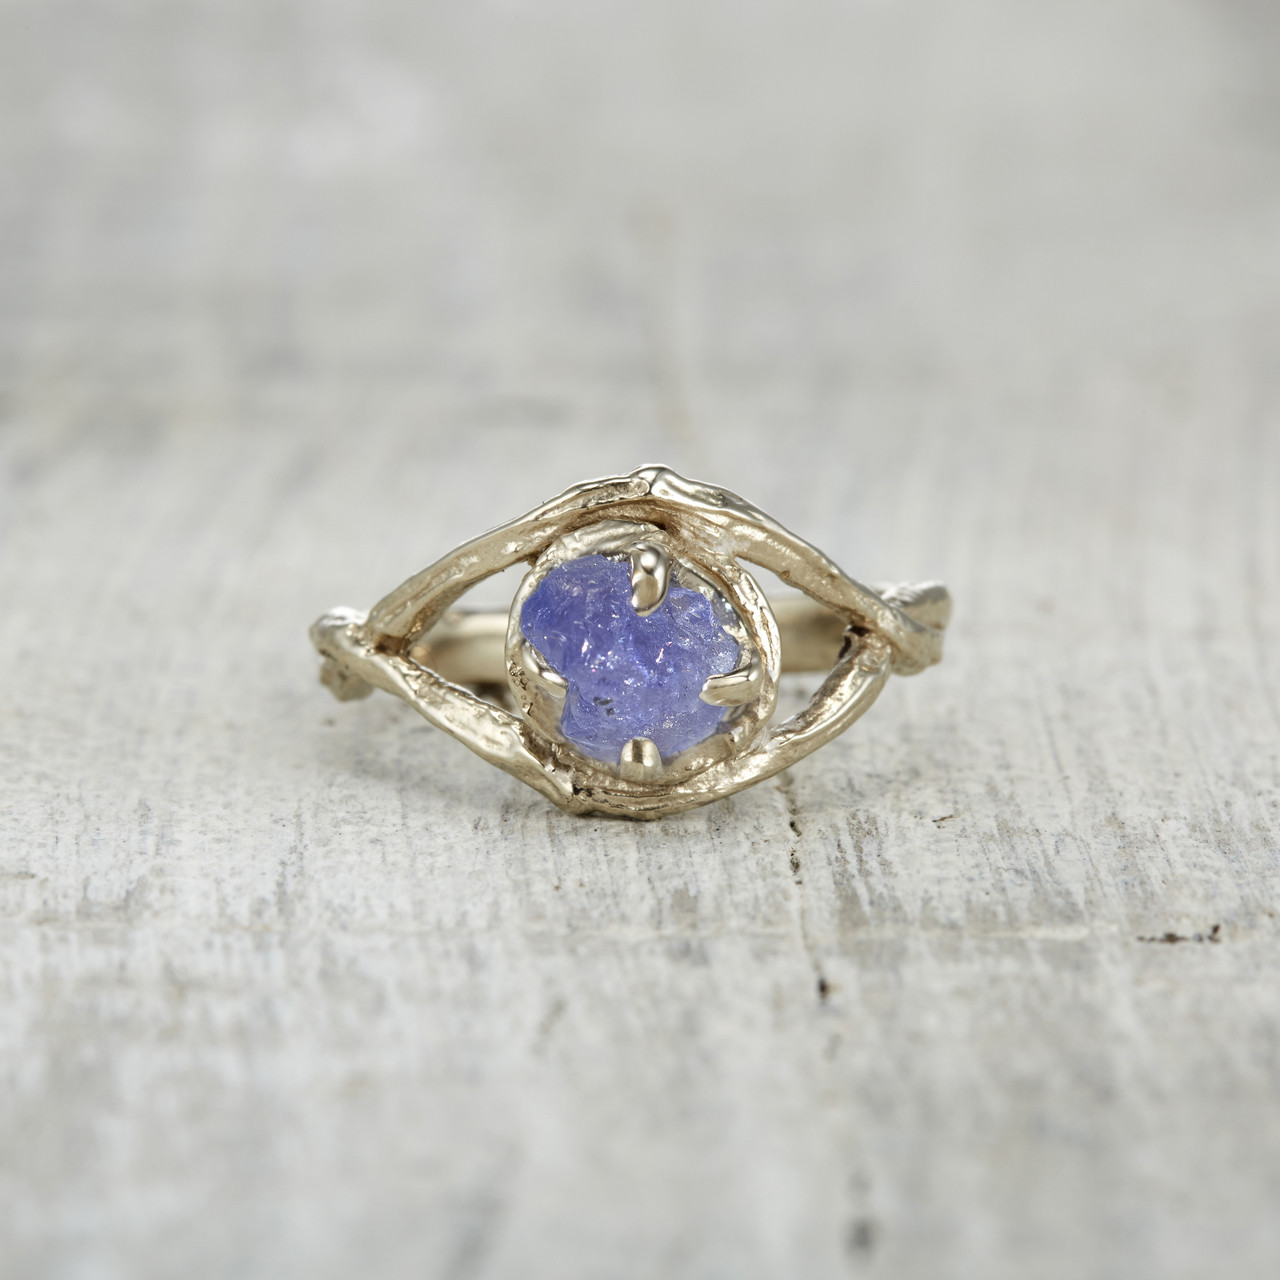 com oval engagement cut violetish blue real rings alibaba free item group on in ring gold jewelry tanzanite accessories aliexpress from shipping